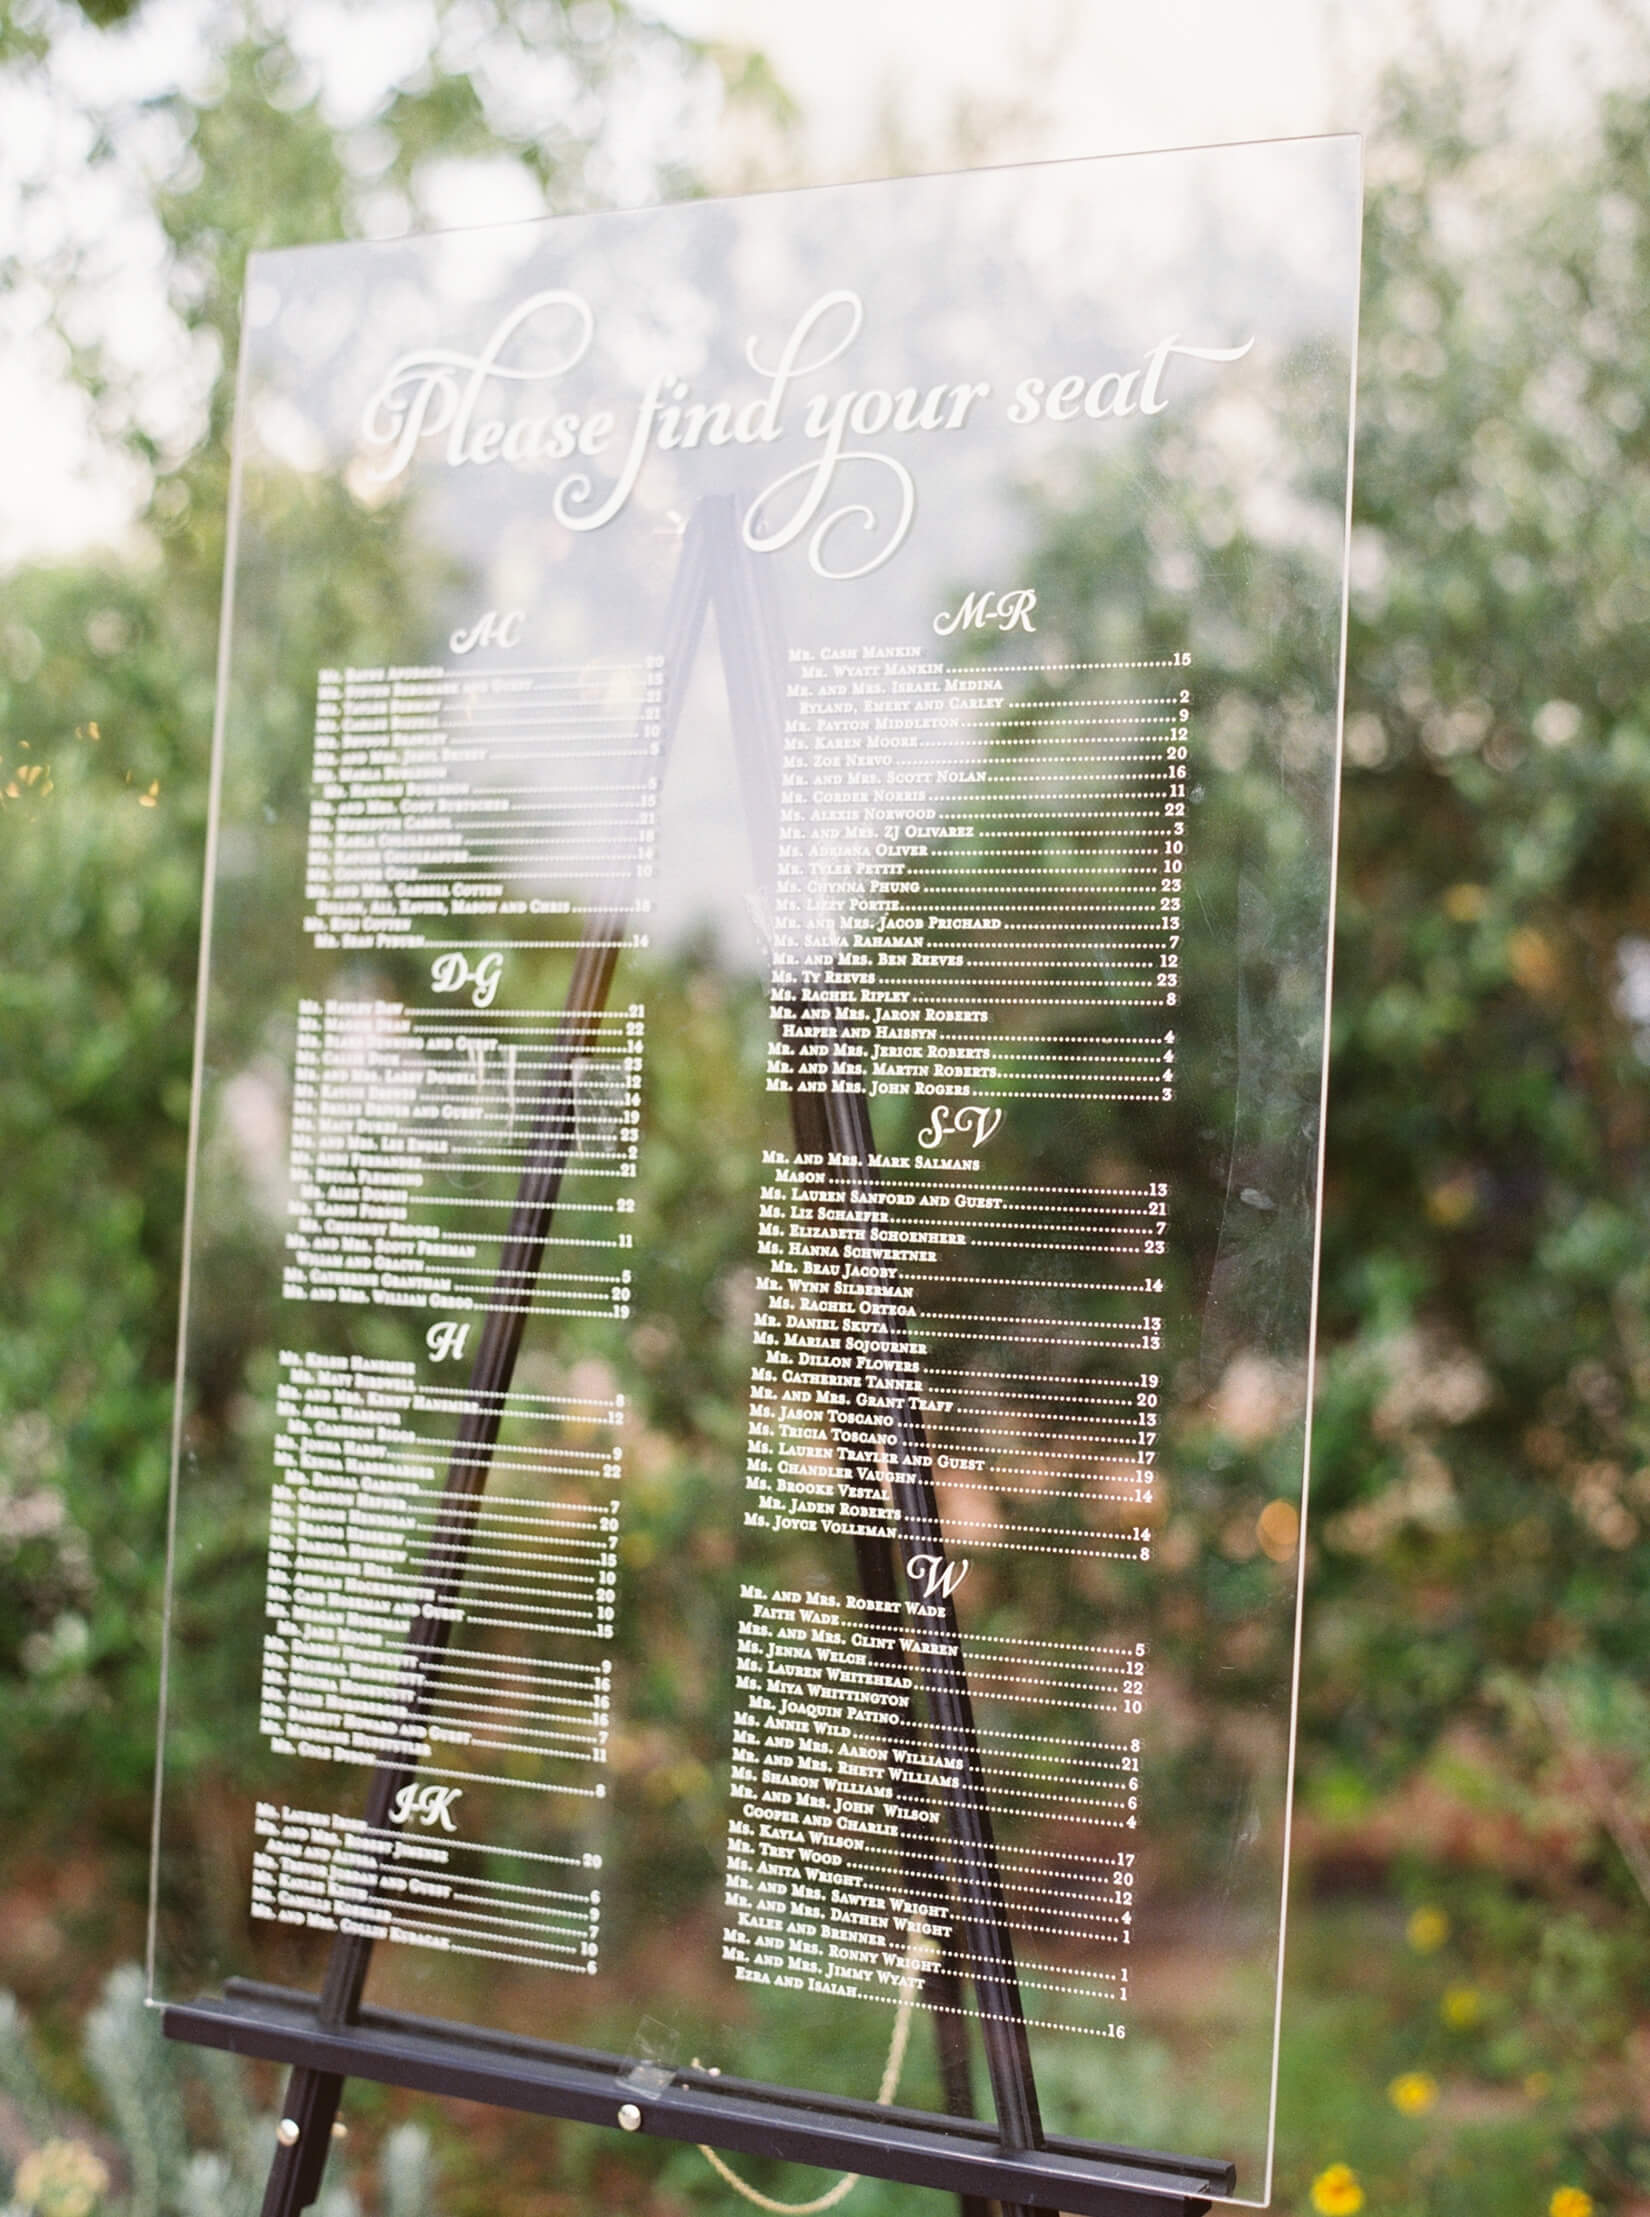 The Inviting Pear-2 foot x 3 foot seating chart.jpg